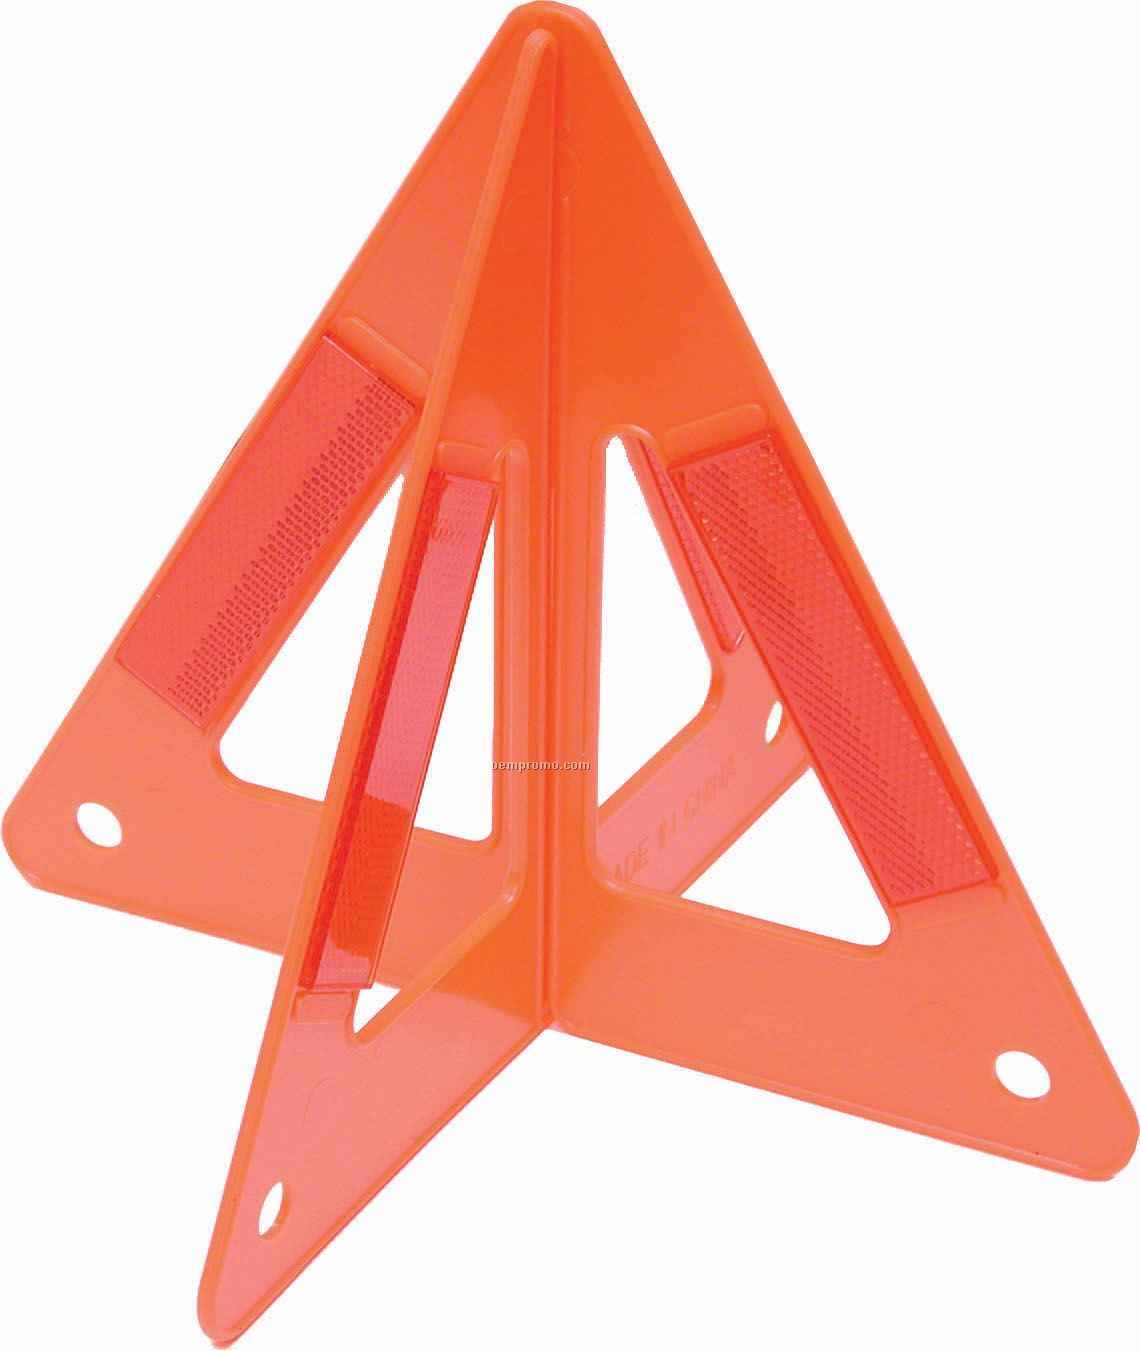 Warning Triangles (2 Piece) (Blank Only)